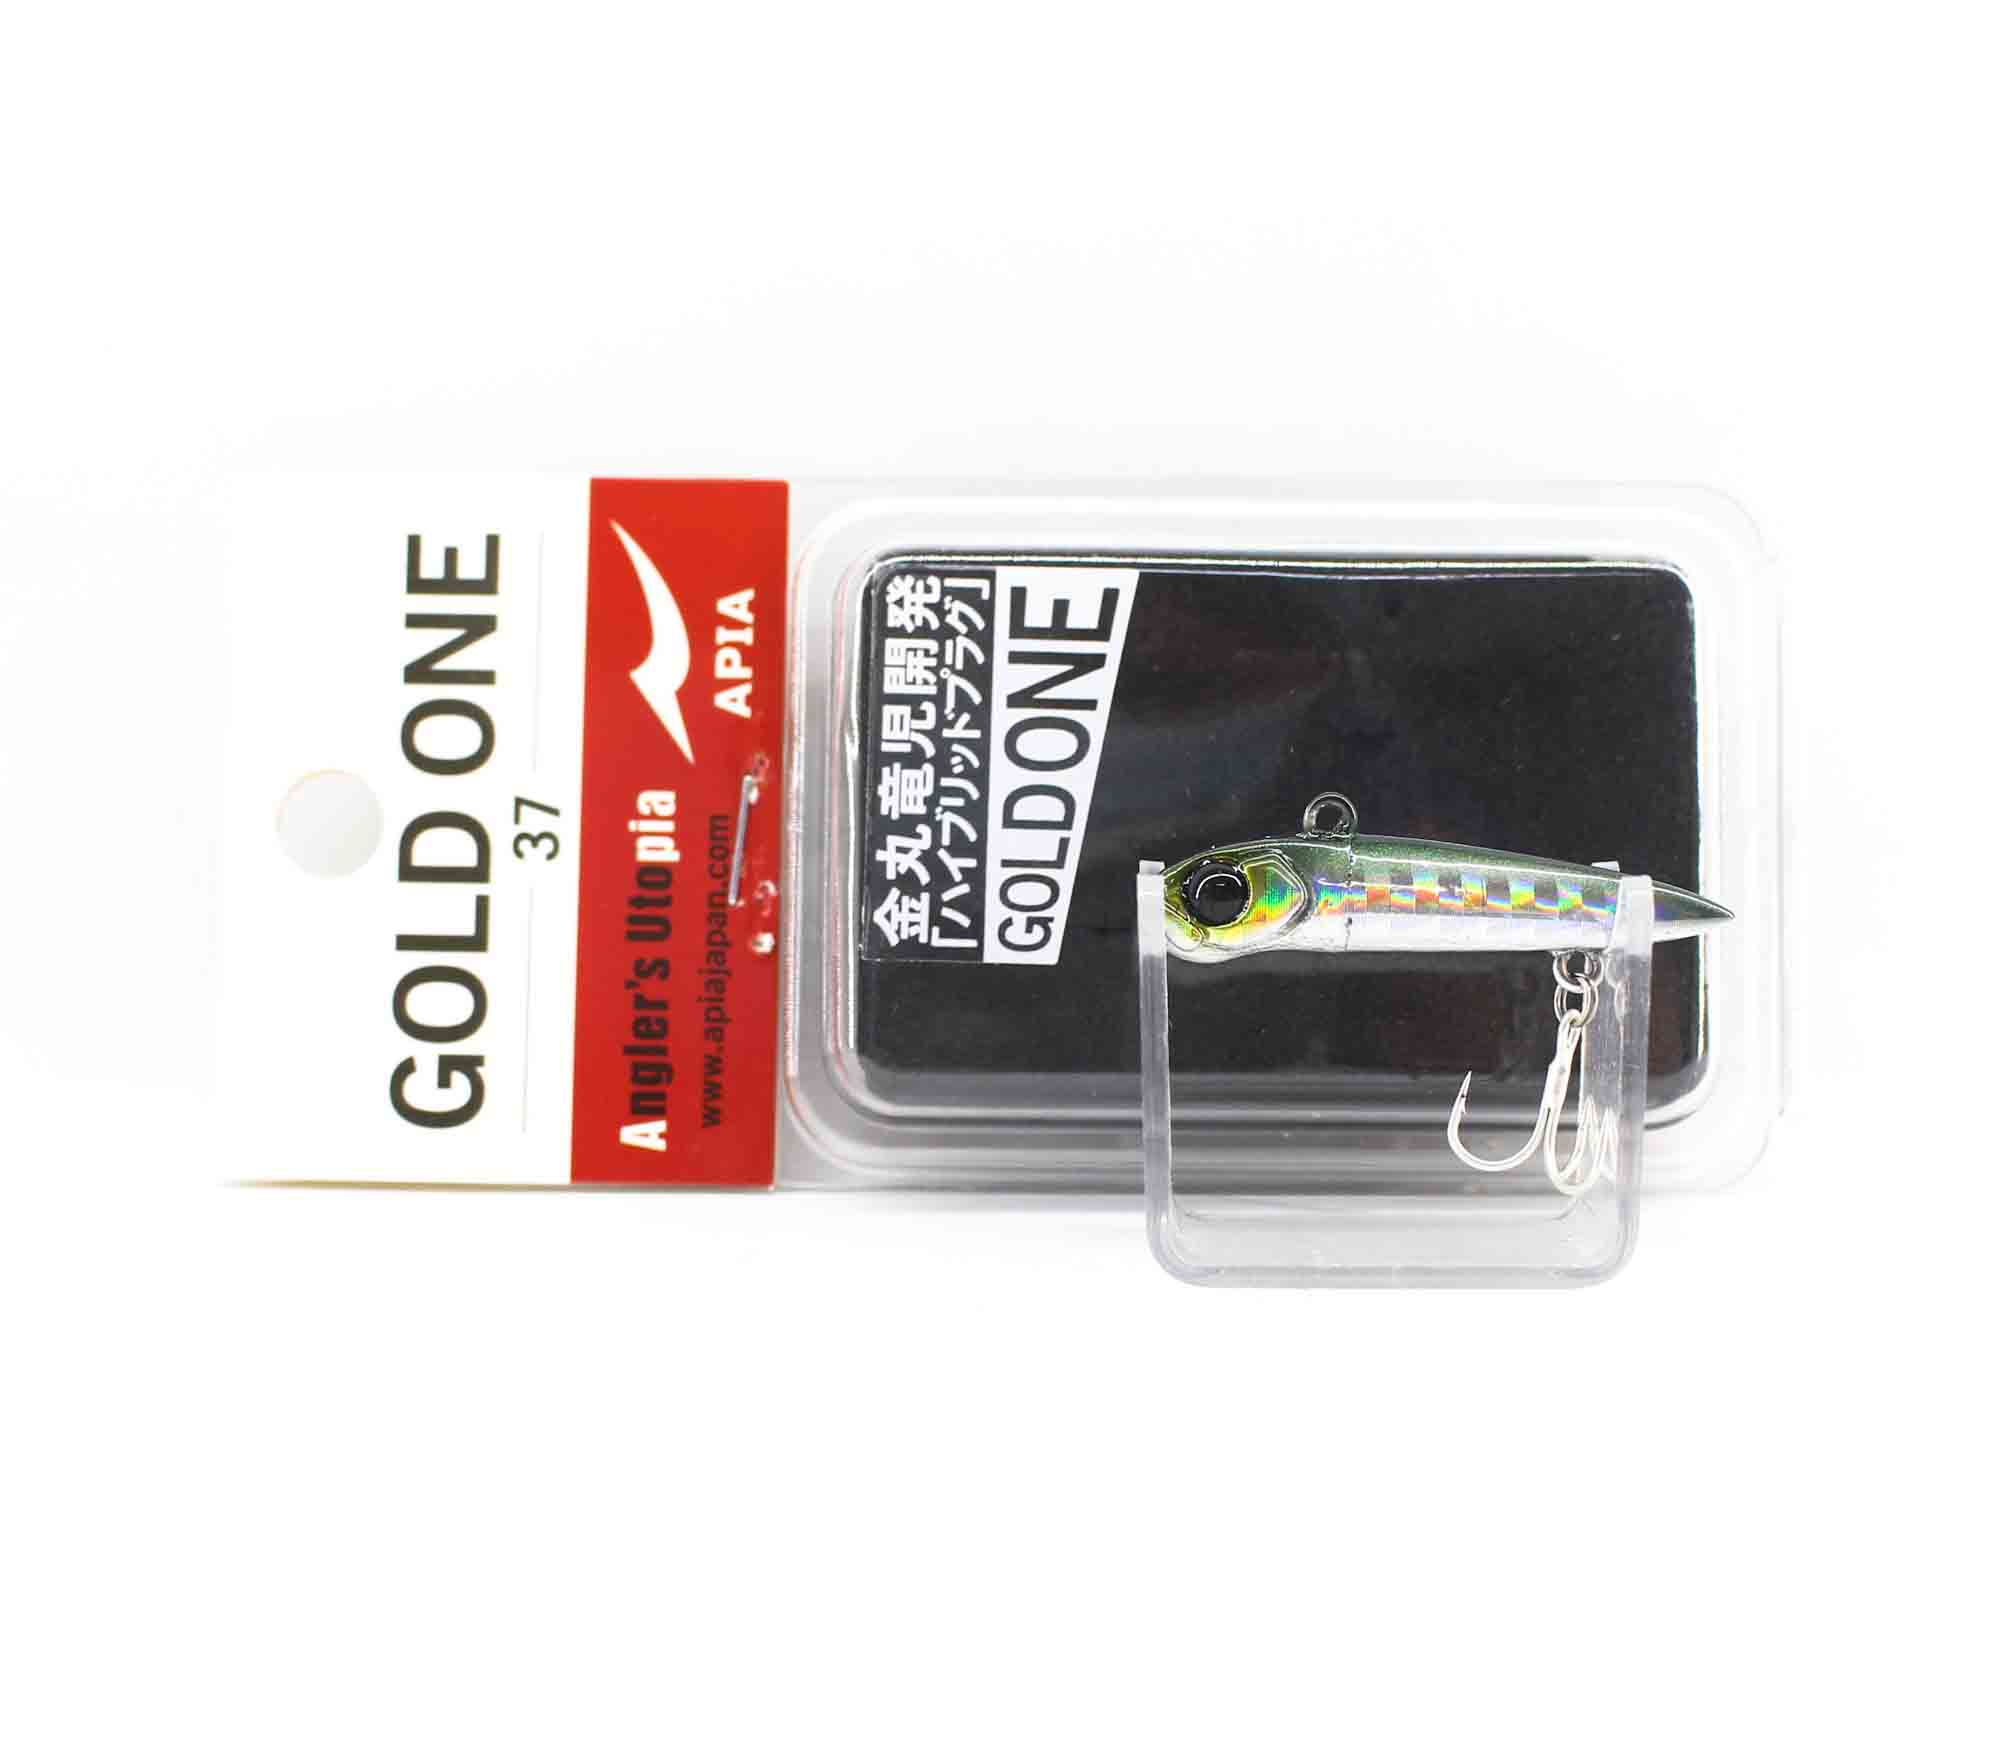 Apia Gold One 37 Sinking Lure 09 (3240)